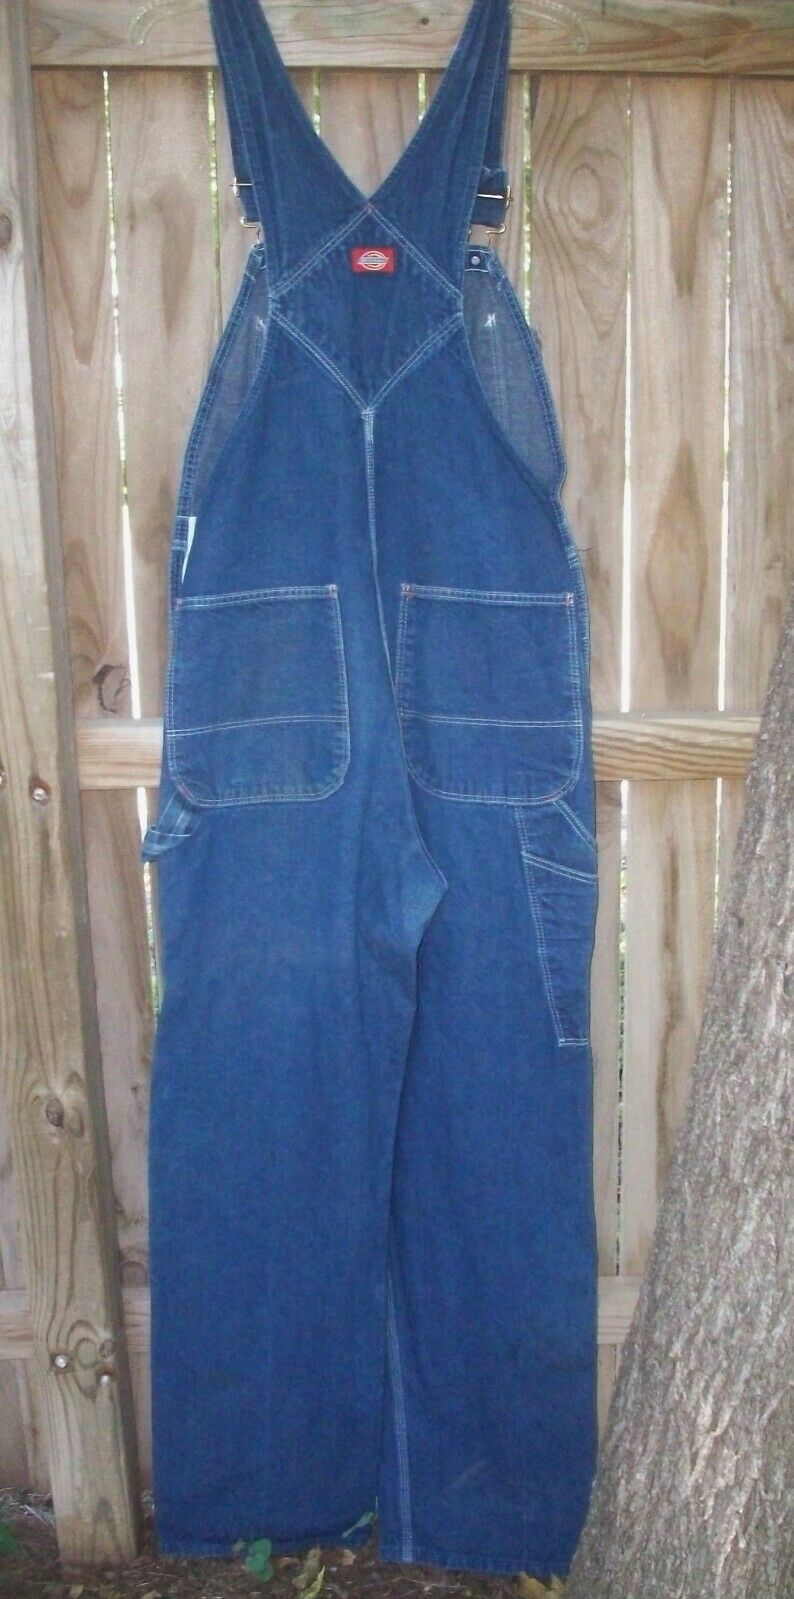 Vintage Dickies Overalls Size 34x34 - image 5